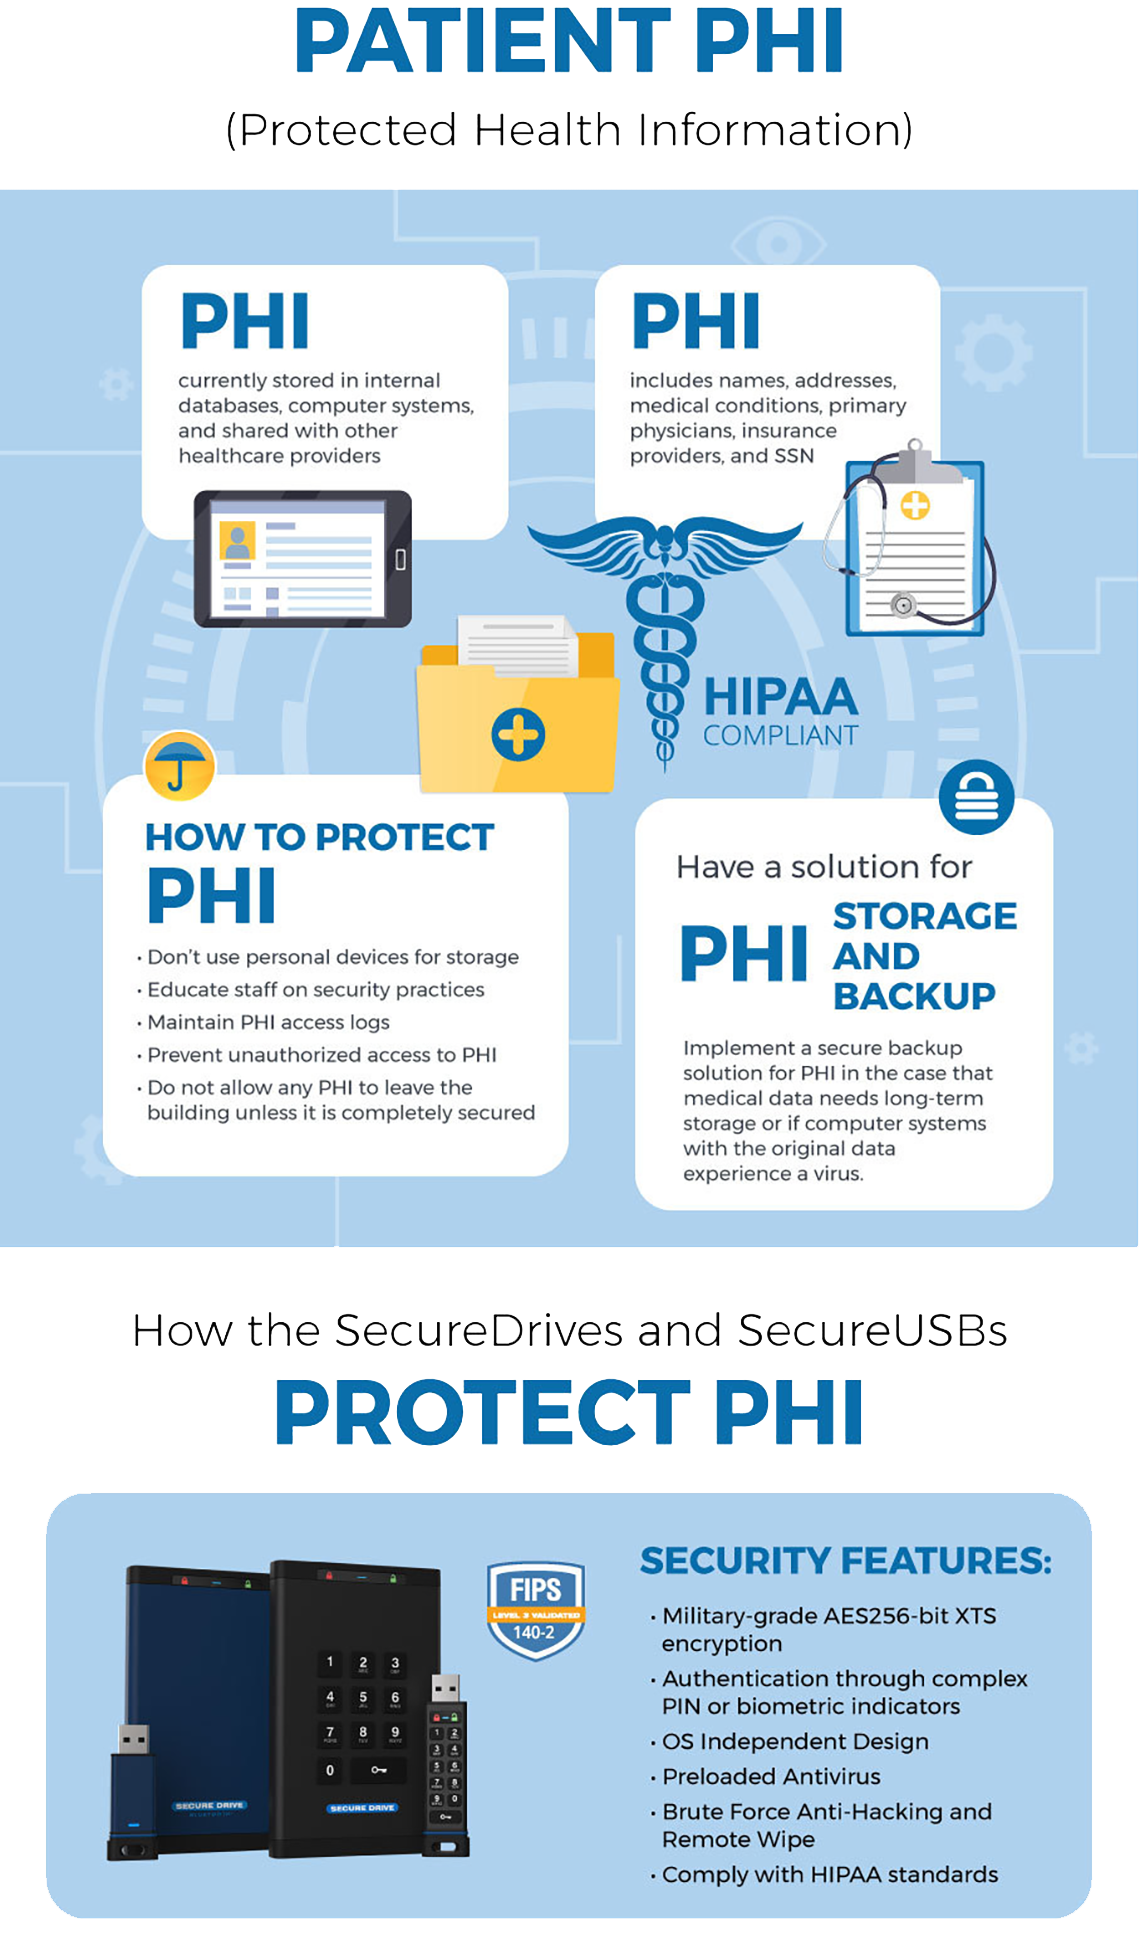 HIPAA Compliance PHII Solution